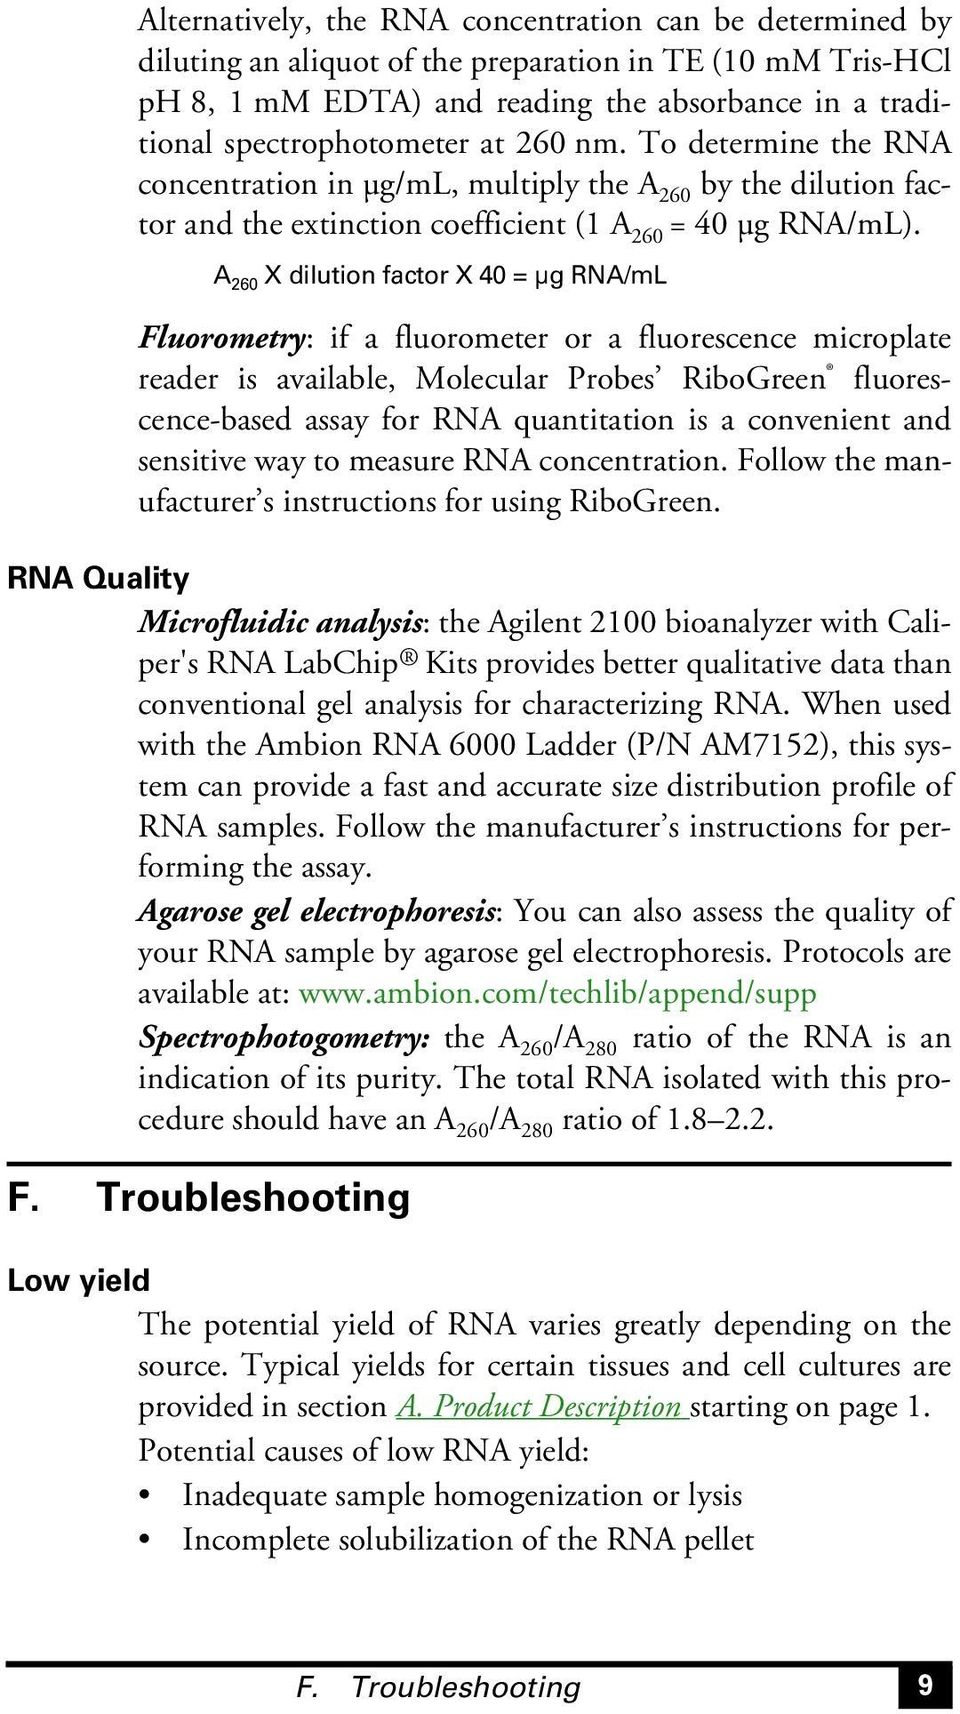 A 260 X dilution factor X 40 = μg RNA/mL Fluorometry: if a fluorometer or a fluorescence microplate reader is available, Molecular Probes RiboGreen fluorescence-based assay for RNA quantitation is a